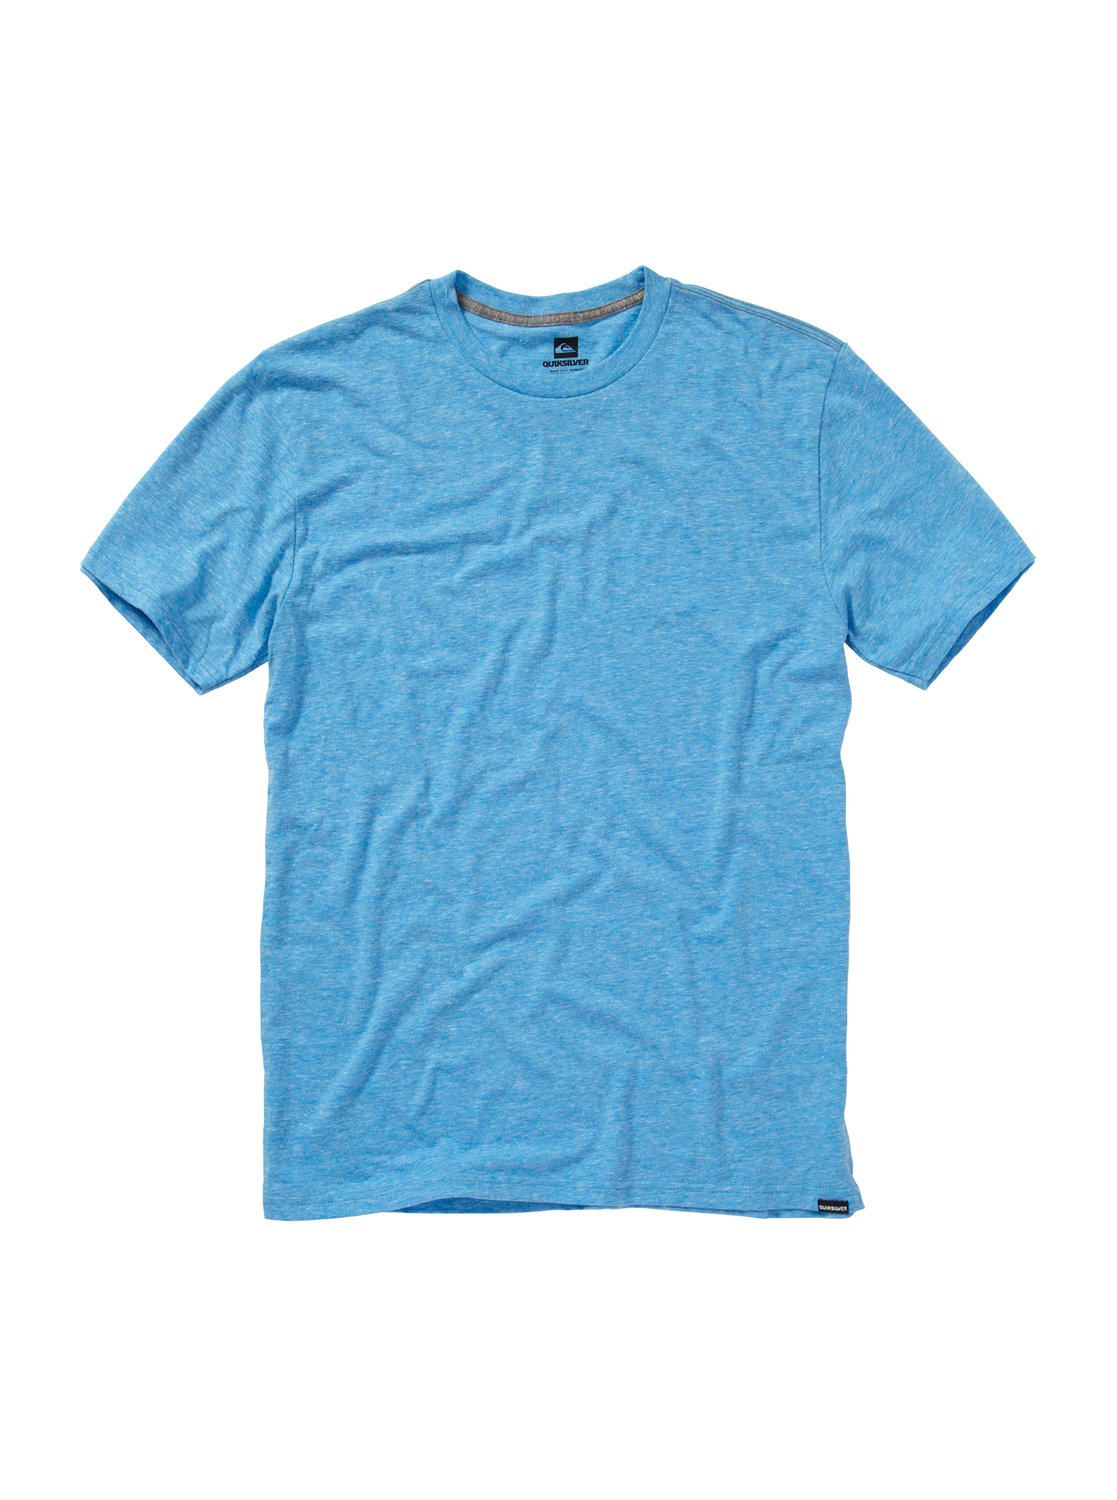 Quiksilver plain black t shirt - 0 Blank Premium Heather Slim Fit T Shirt Aqyzt00437 Quiksilver